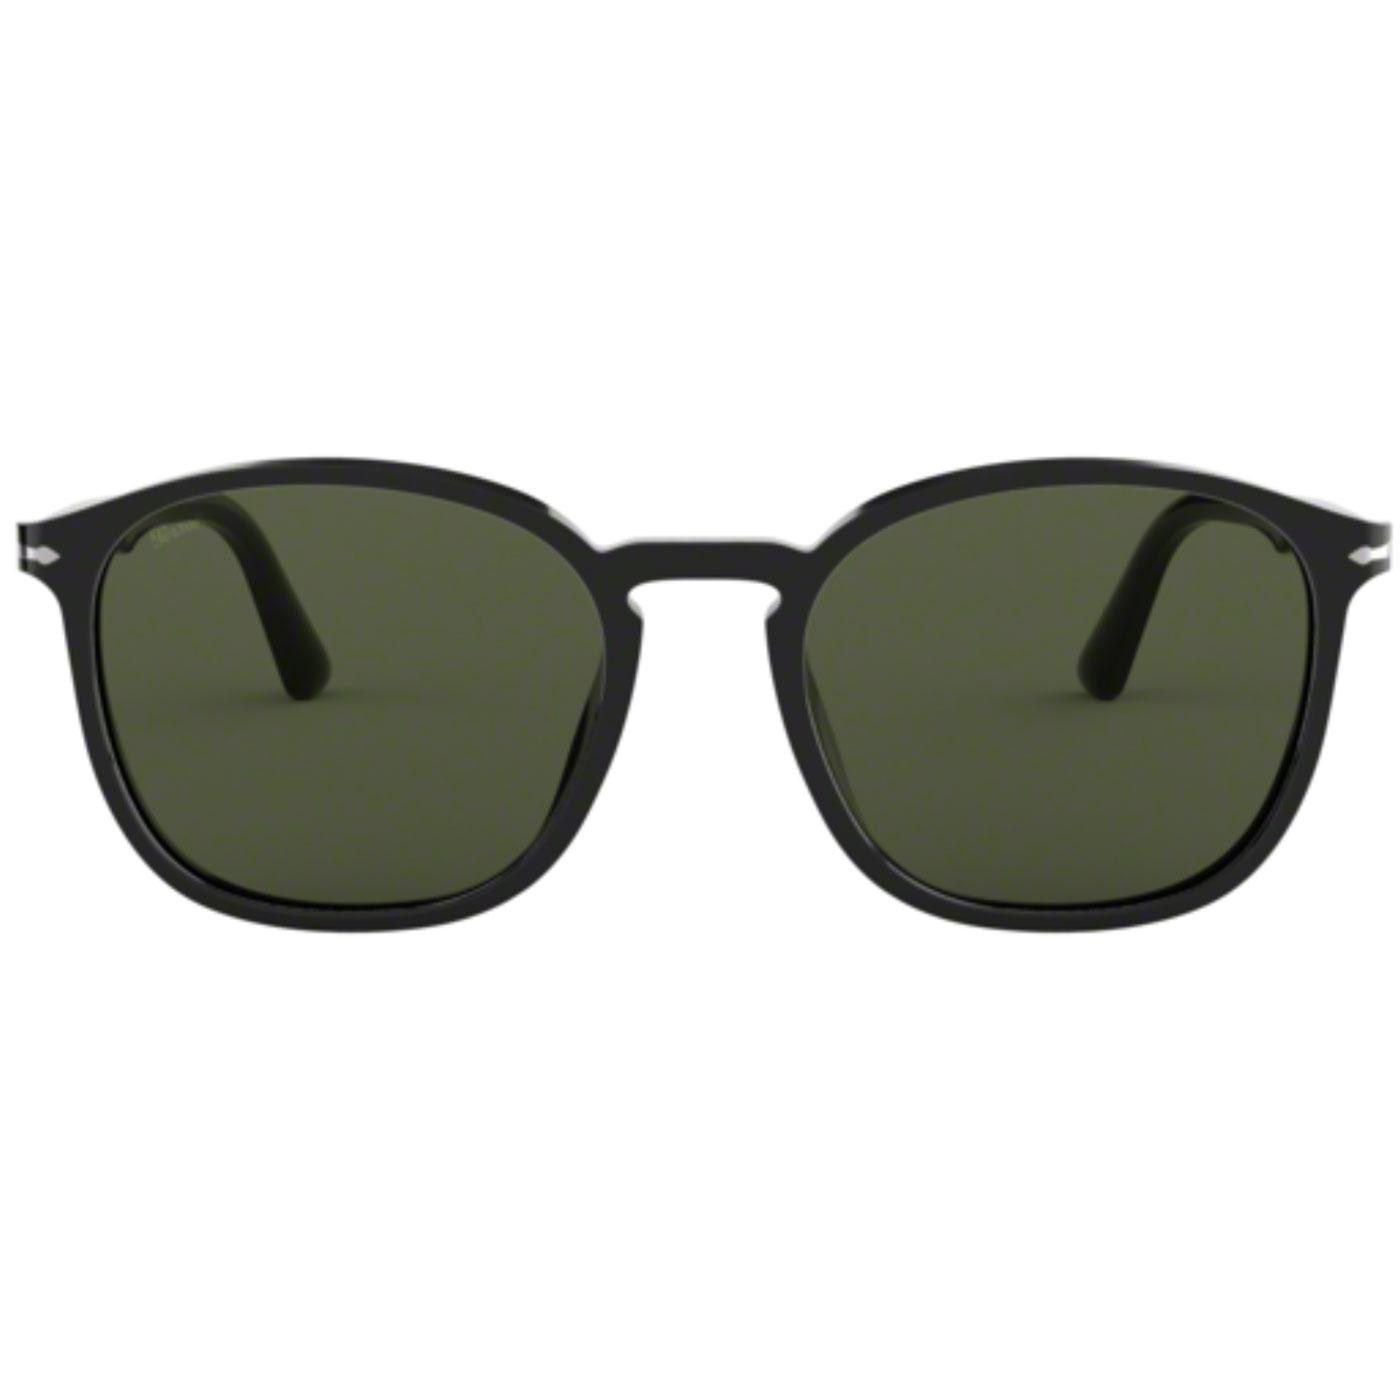 PERSOL Men's Retro 70s Wayfarer Sunglasses (Black)